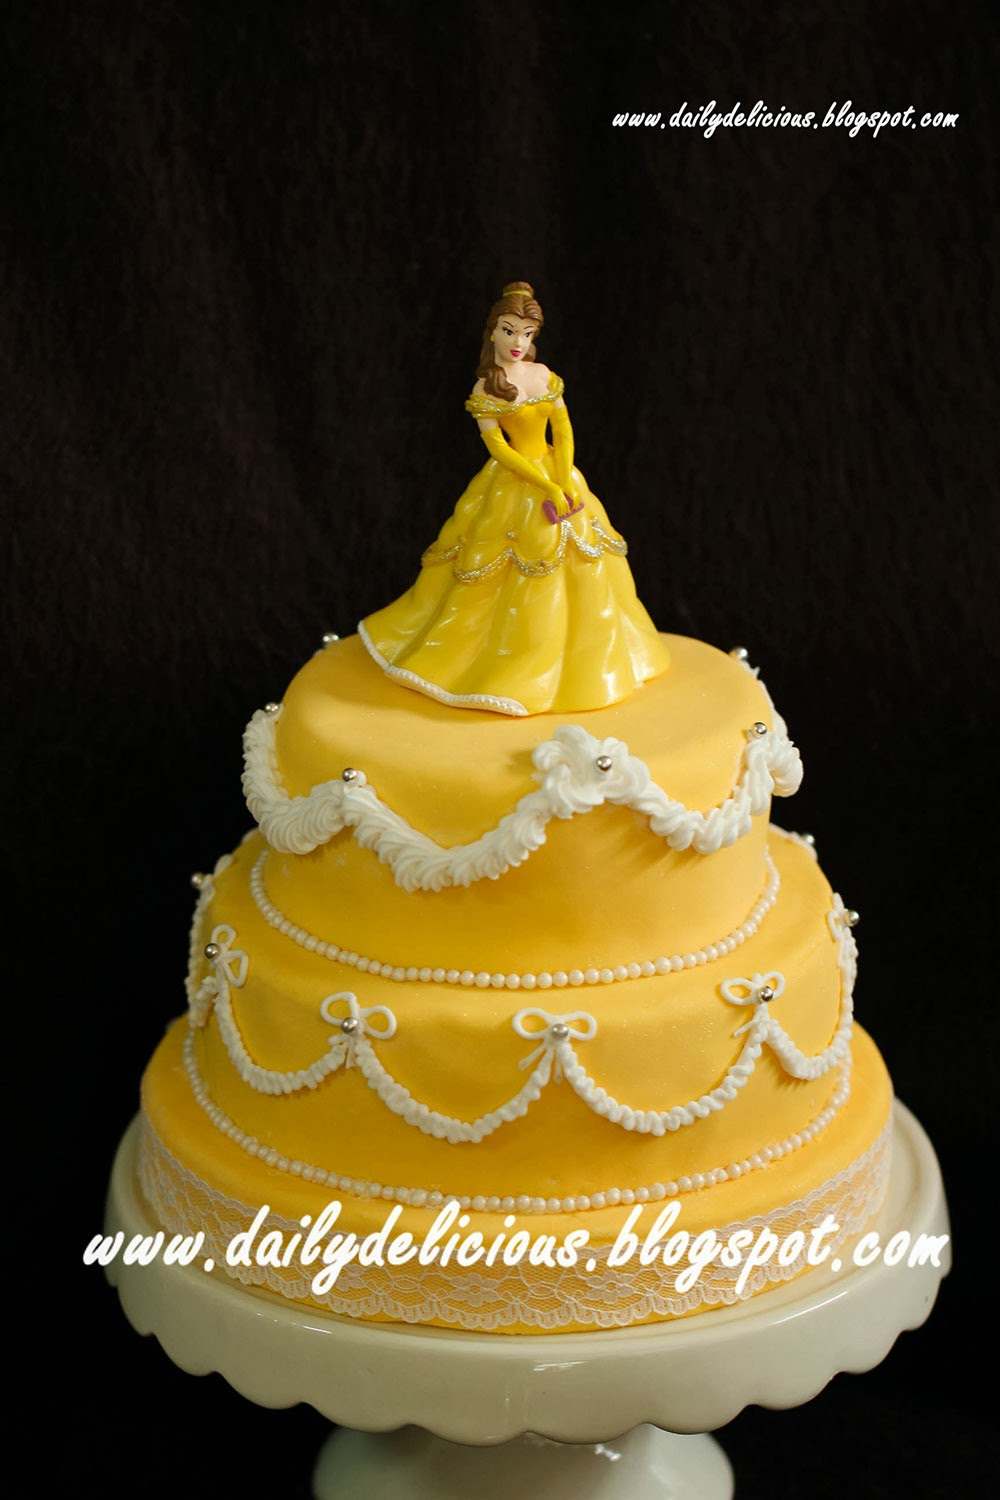 Images Of Cake For Niece : dailydelicious: Happy Birthday My Niece: Princess Cake ...